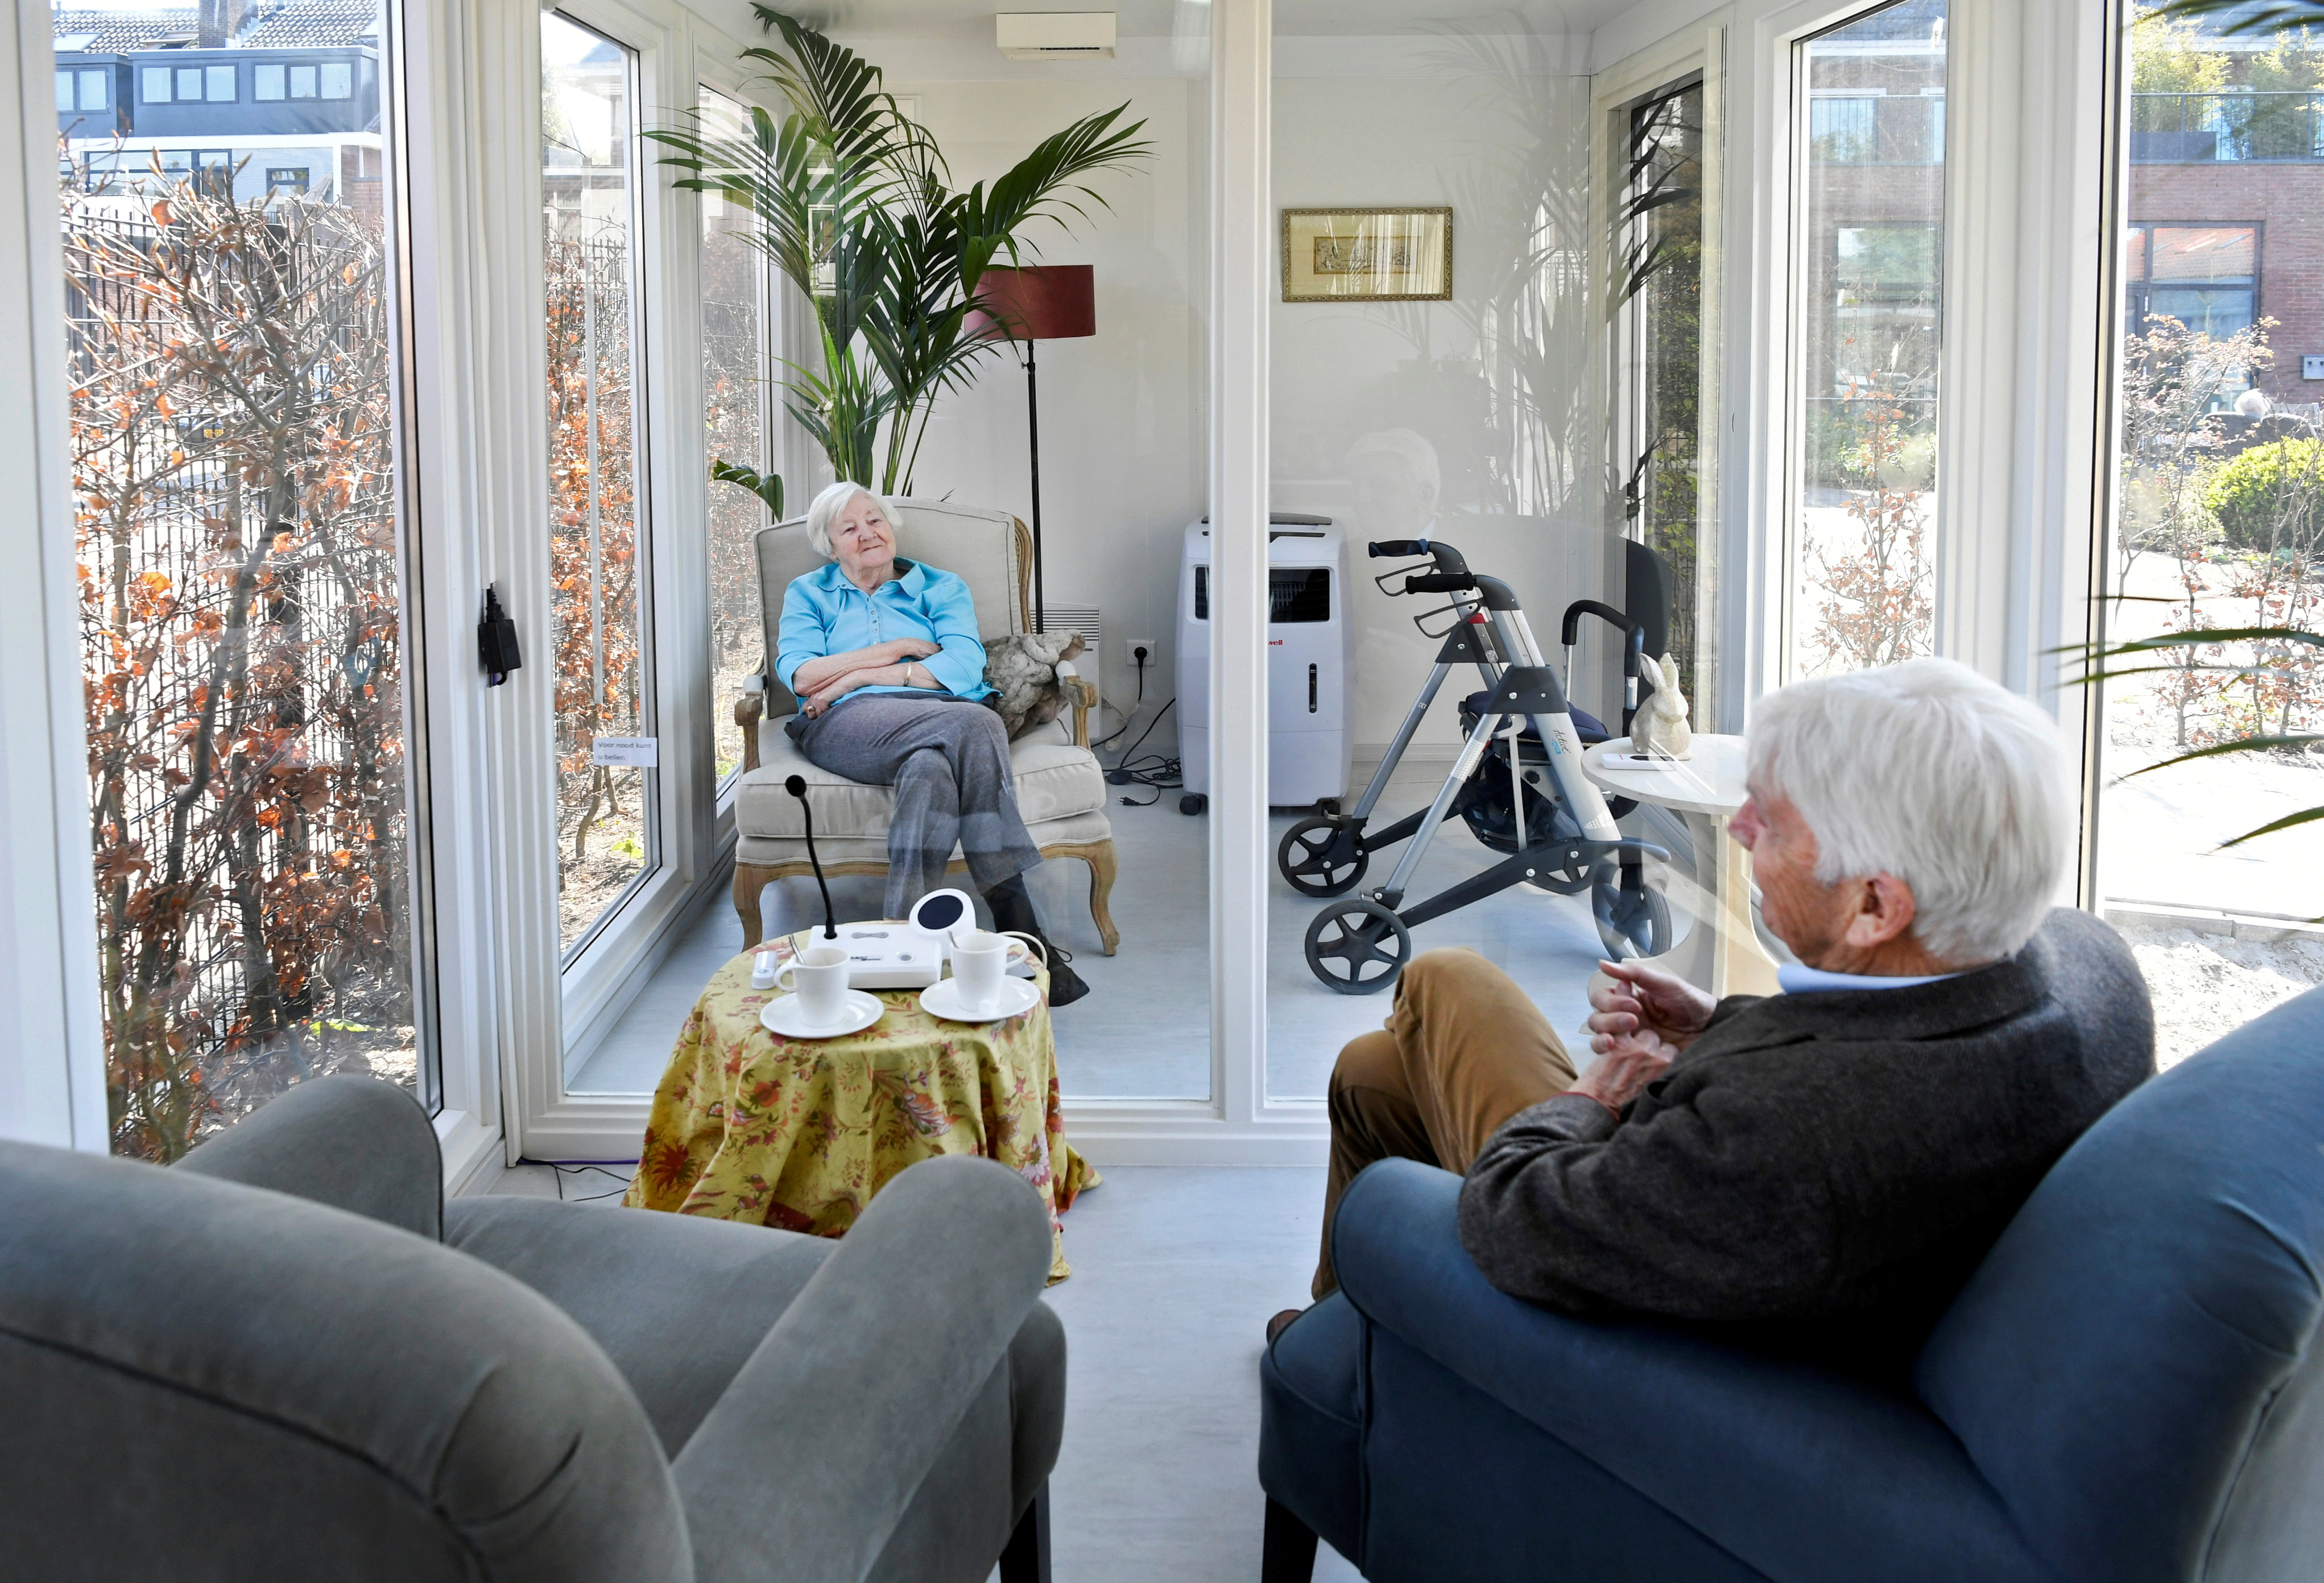 A man visits his wife at a care facility for elderly people with dementia in a glass house that has been built to combat loneliness   after a visit ban was imposed due to the coronavirus disease (COVID-19) outbreak in Wassenaar, Netherlands, April 9, 2020. REUTERS/Piroschka van de Wouw/File Photo